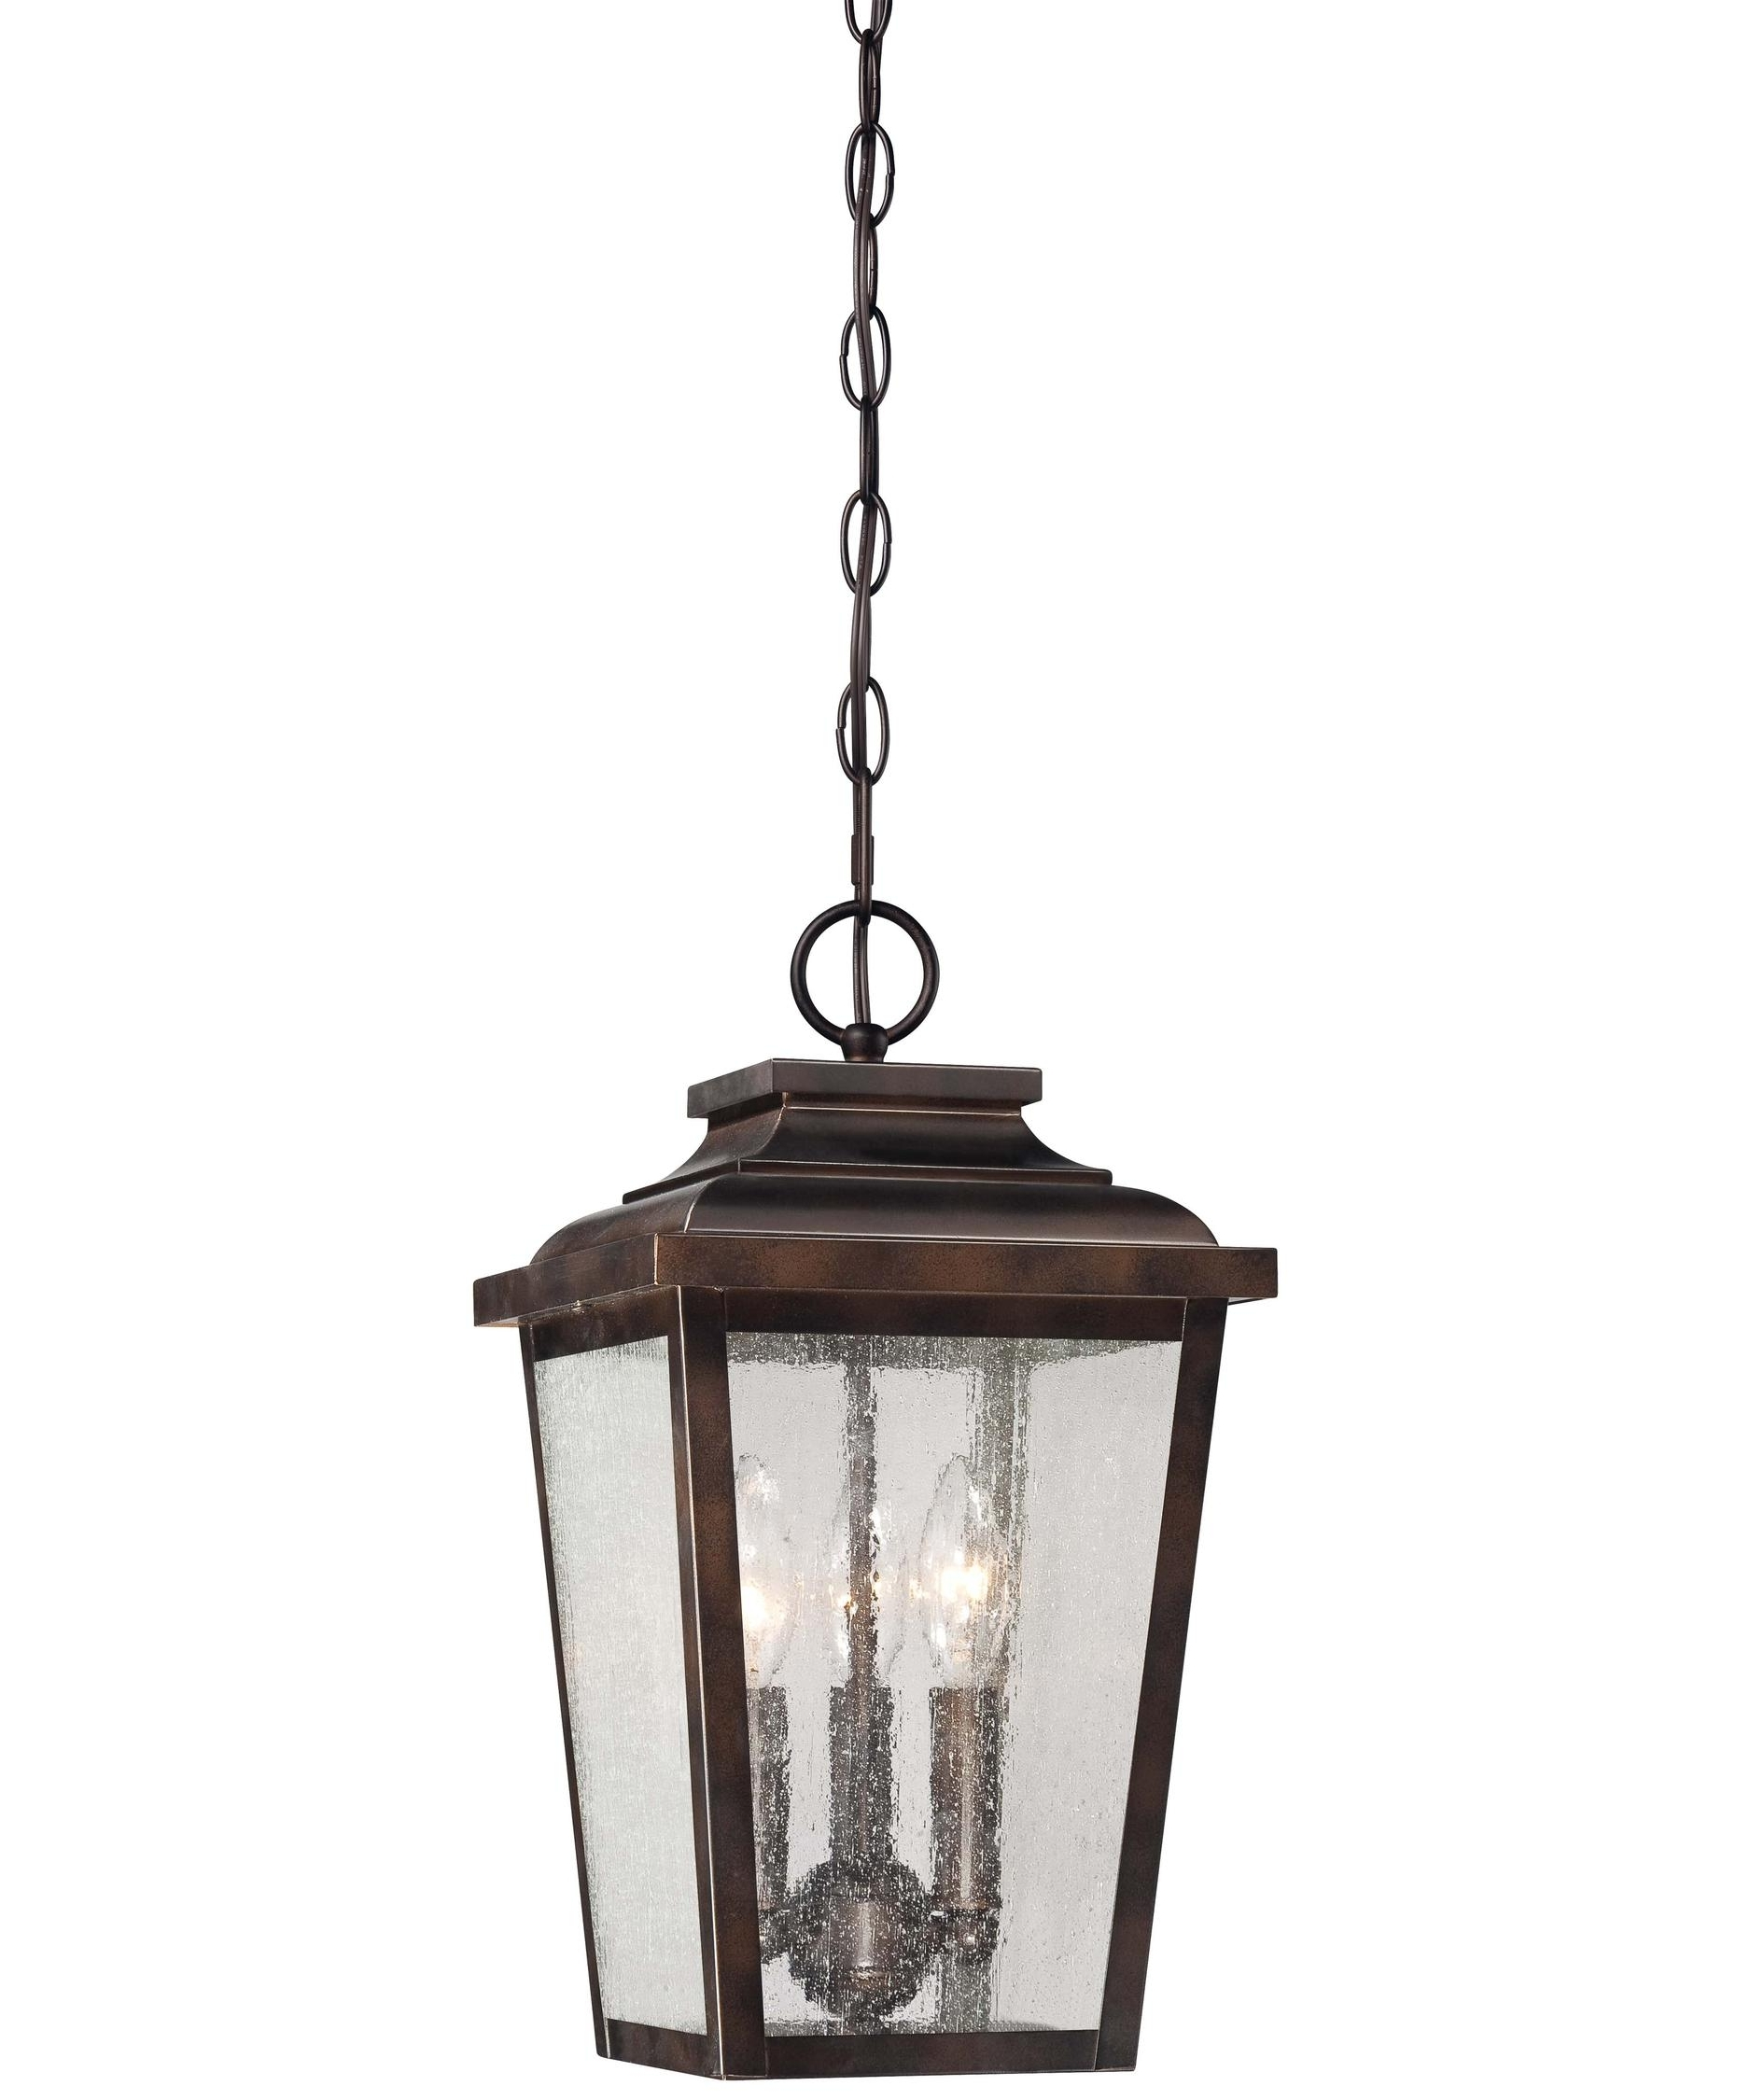 Minka Lavery 72174 Irvington Manor 9 Inch Wide 3 Light Outdoor Within Most Current Outdoor Lanterns For Front Porch (View 4 of 20)